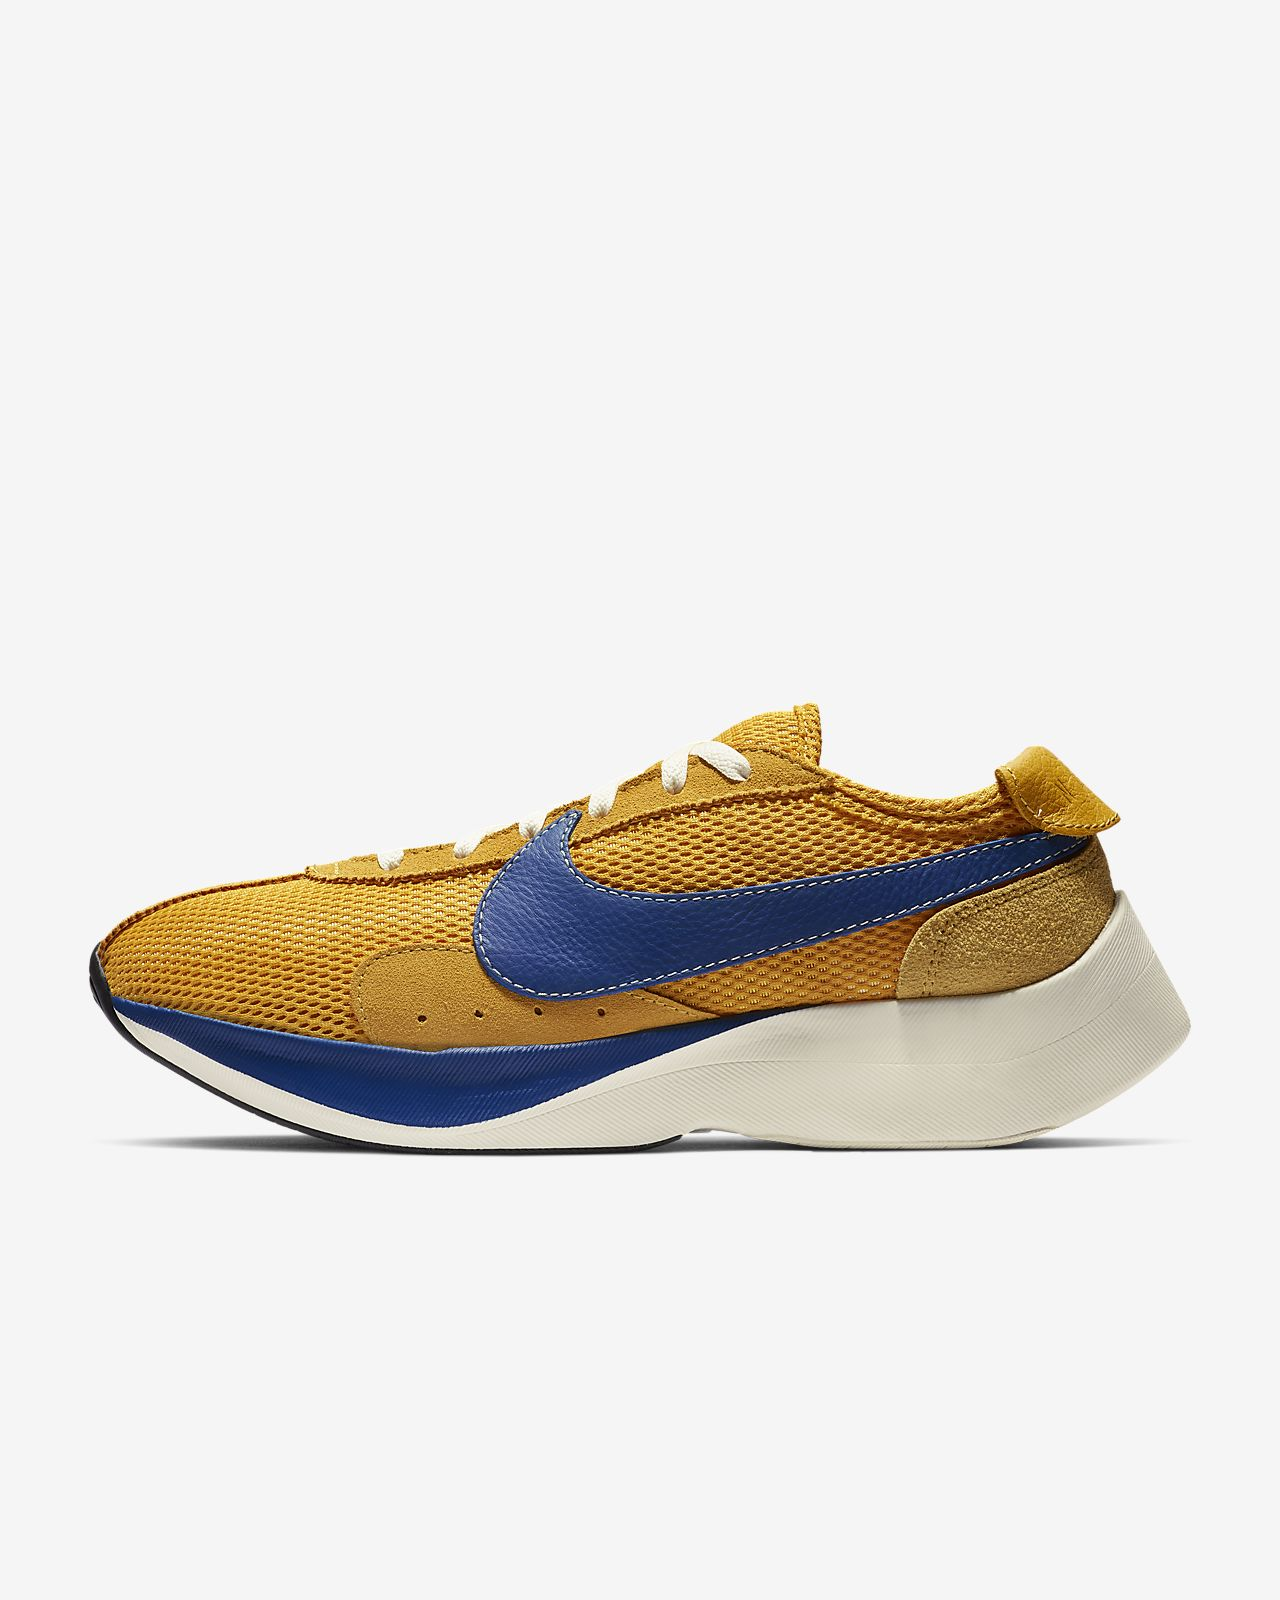 Nike Moon Racer QS Men's Shoe